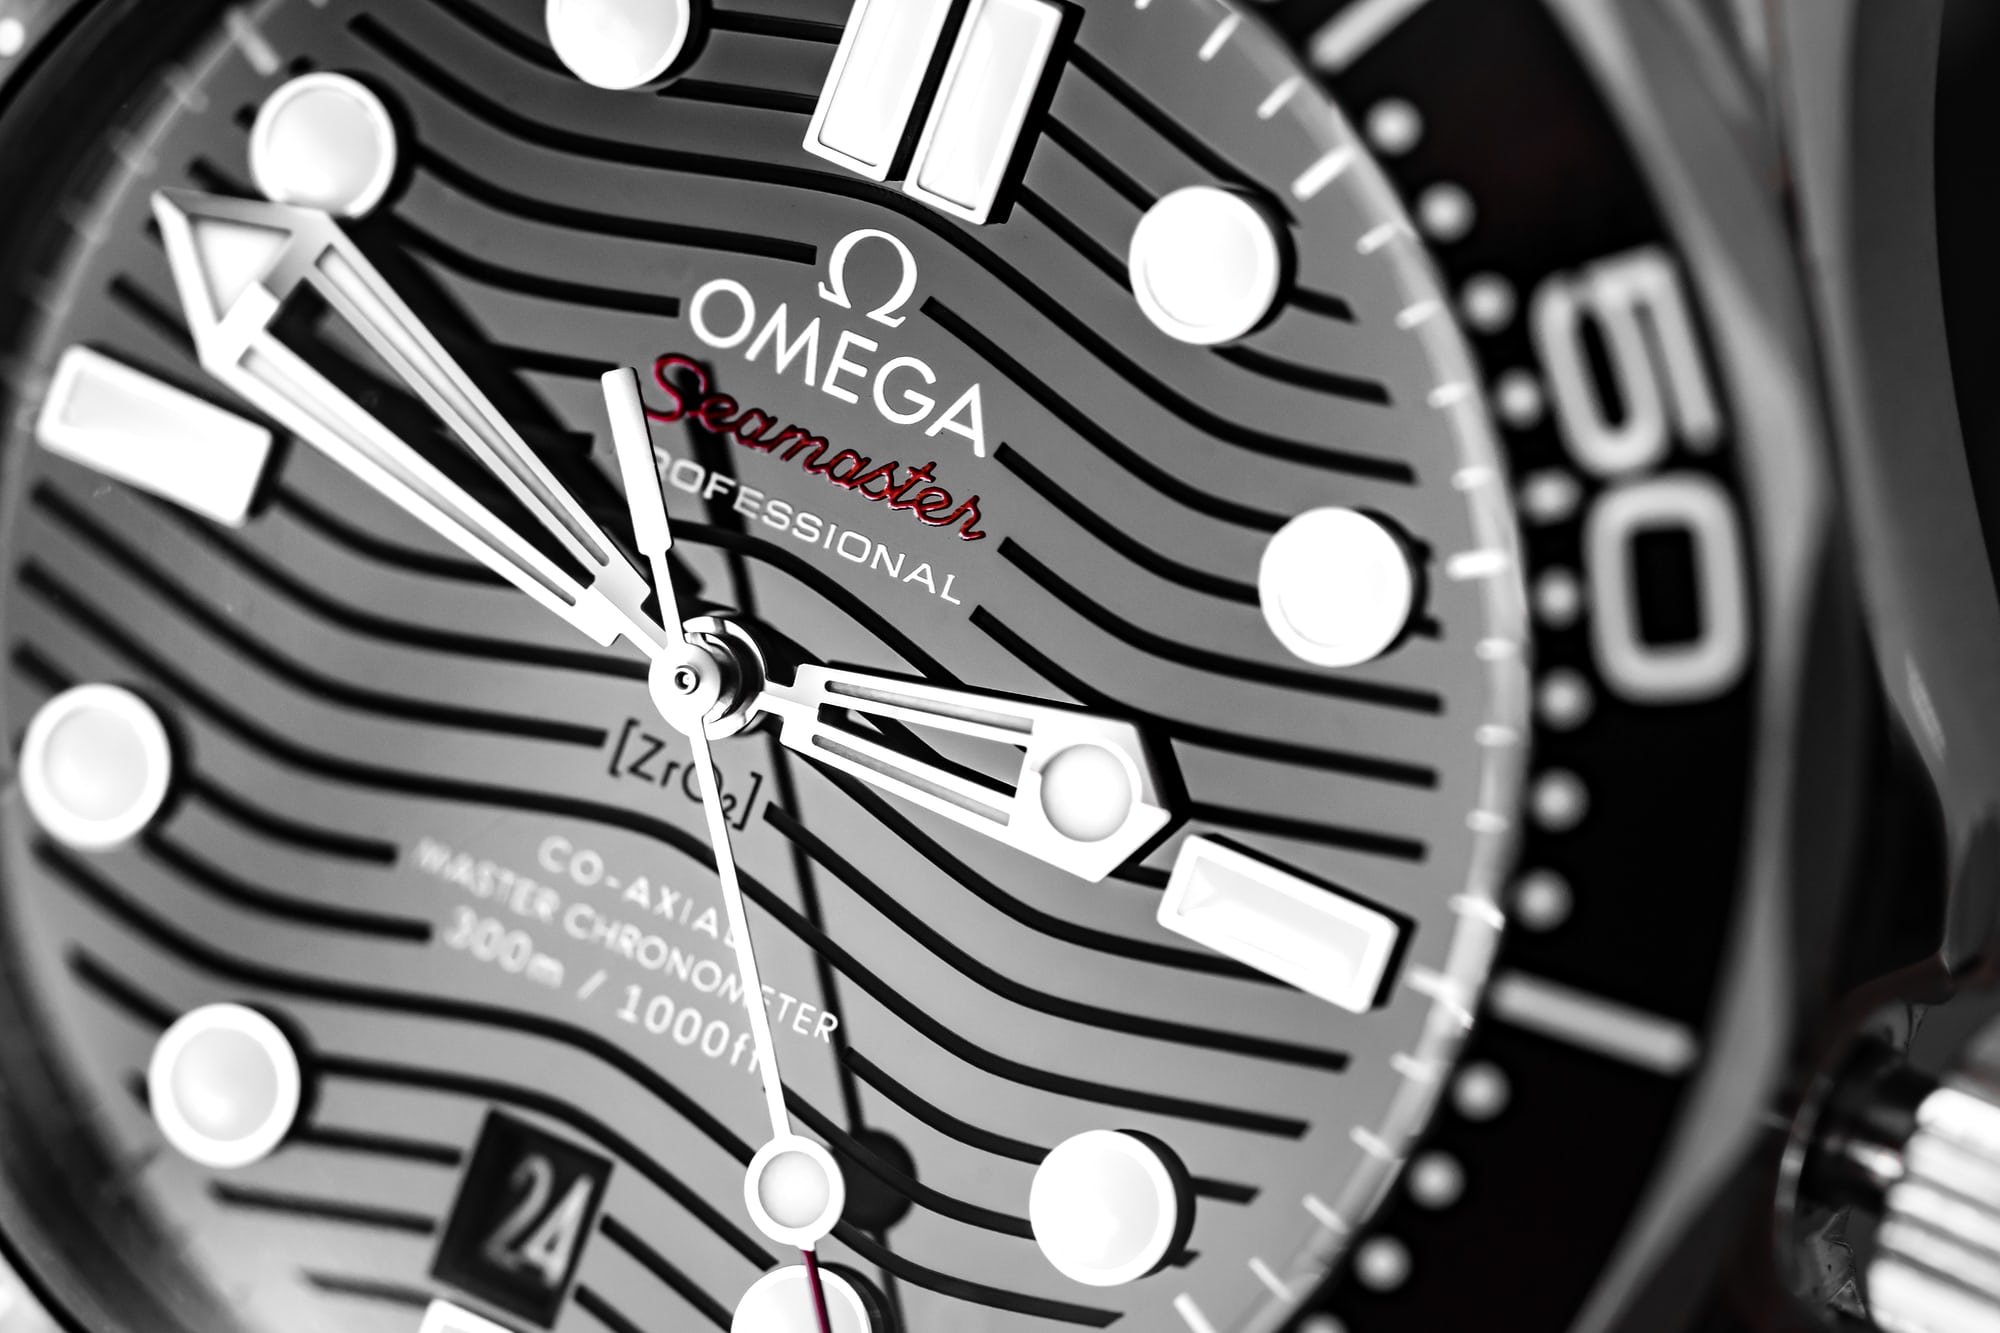 In-Depth: Diving With The Omega Seamaster Professional 300M SM300 pro 2